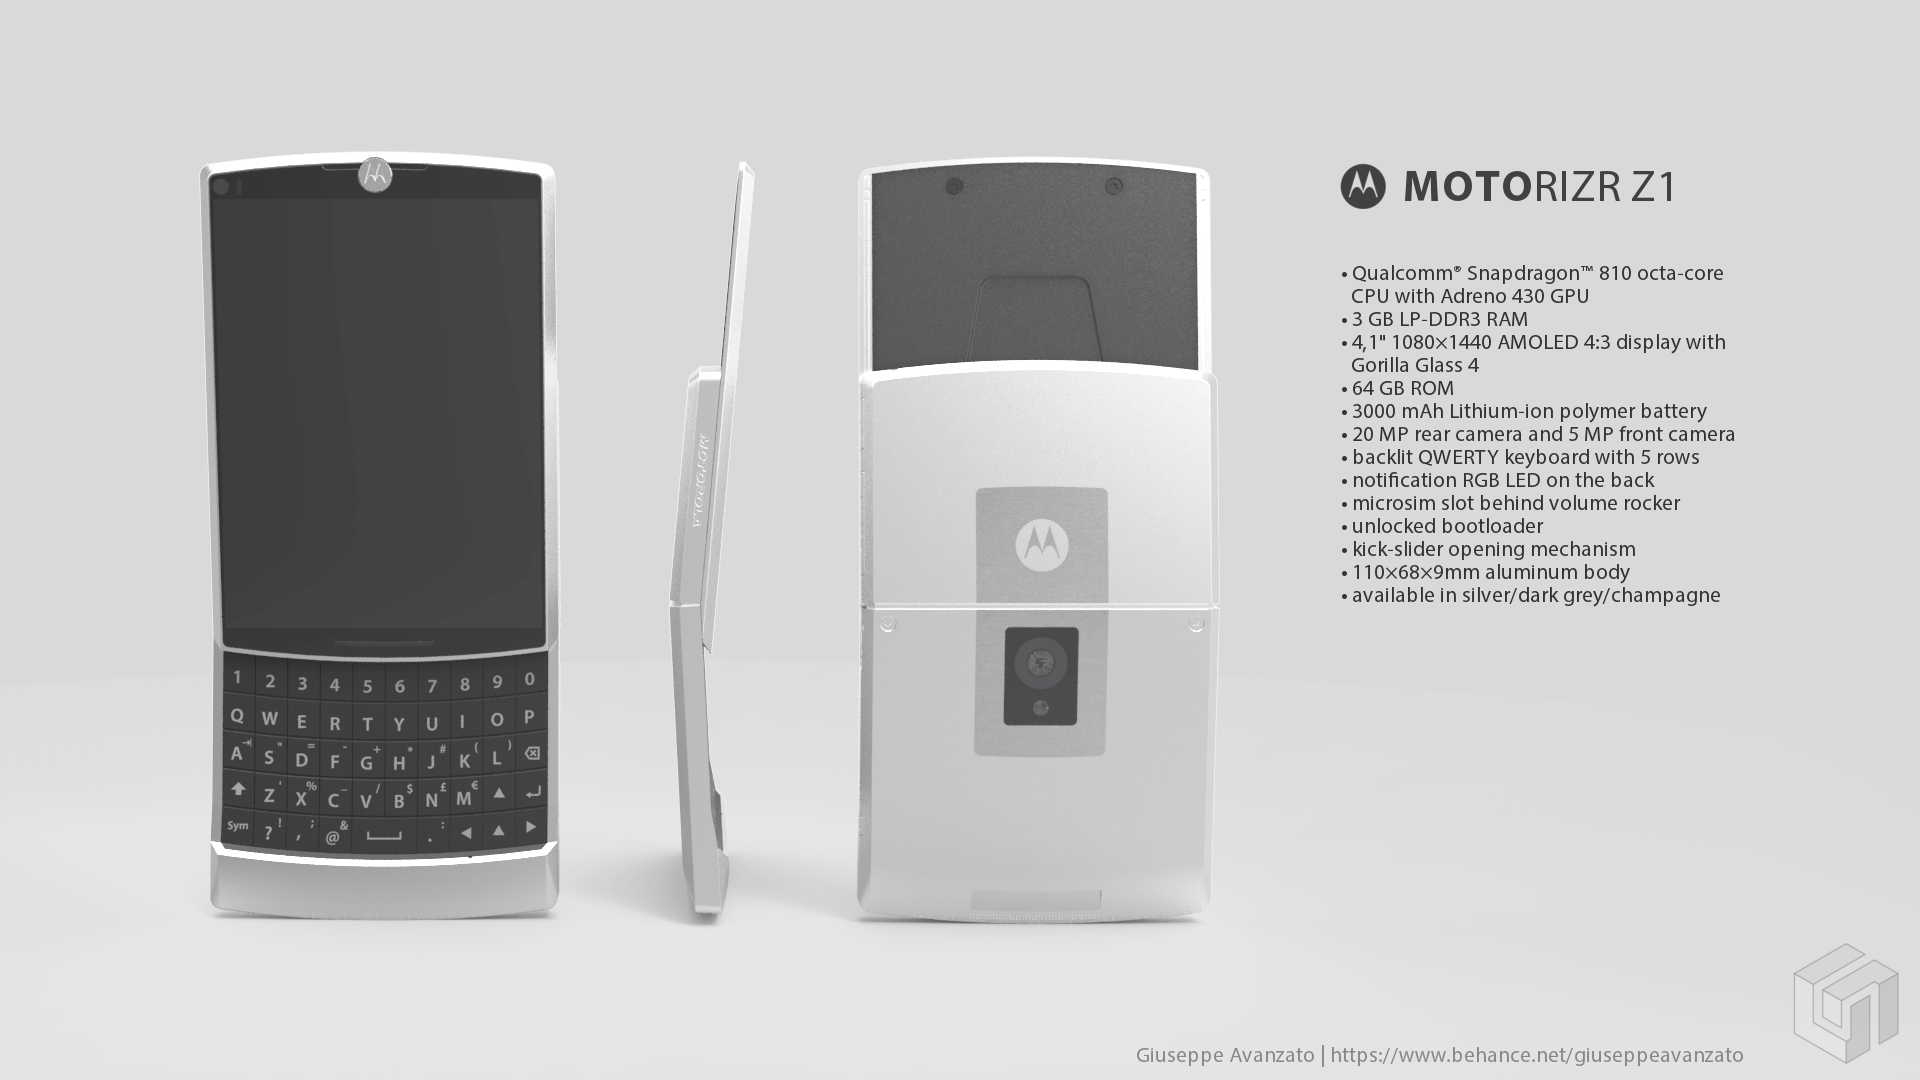 Motorola Motorizr Z1 Is A Blast From The Past And A Blast